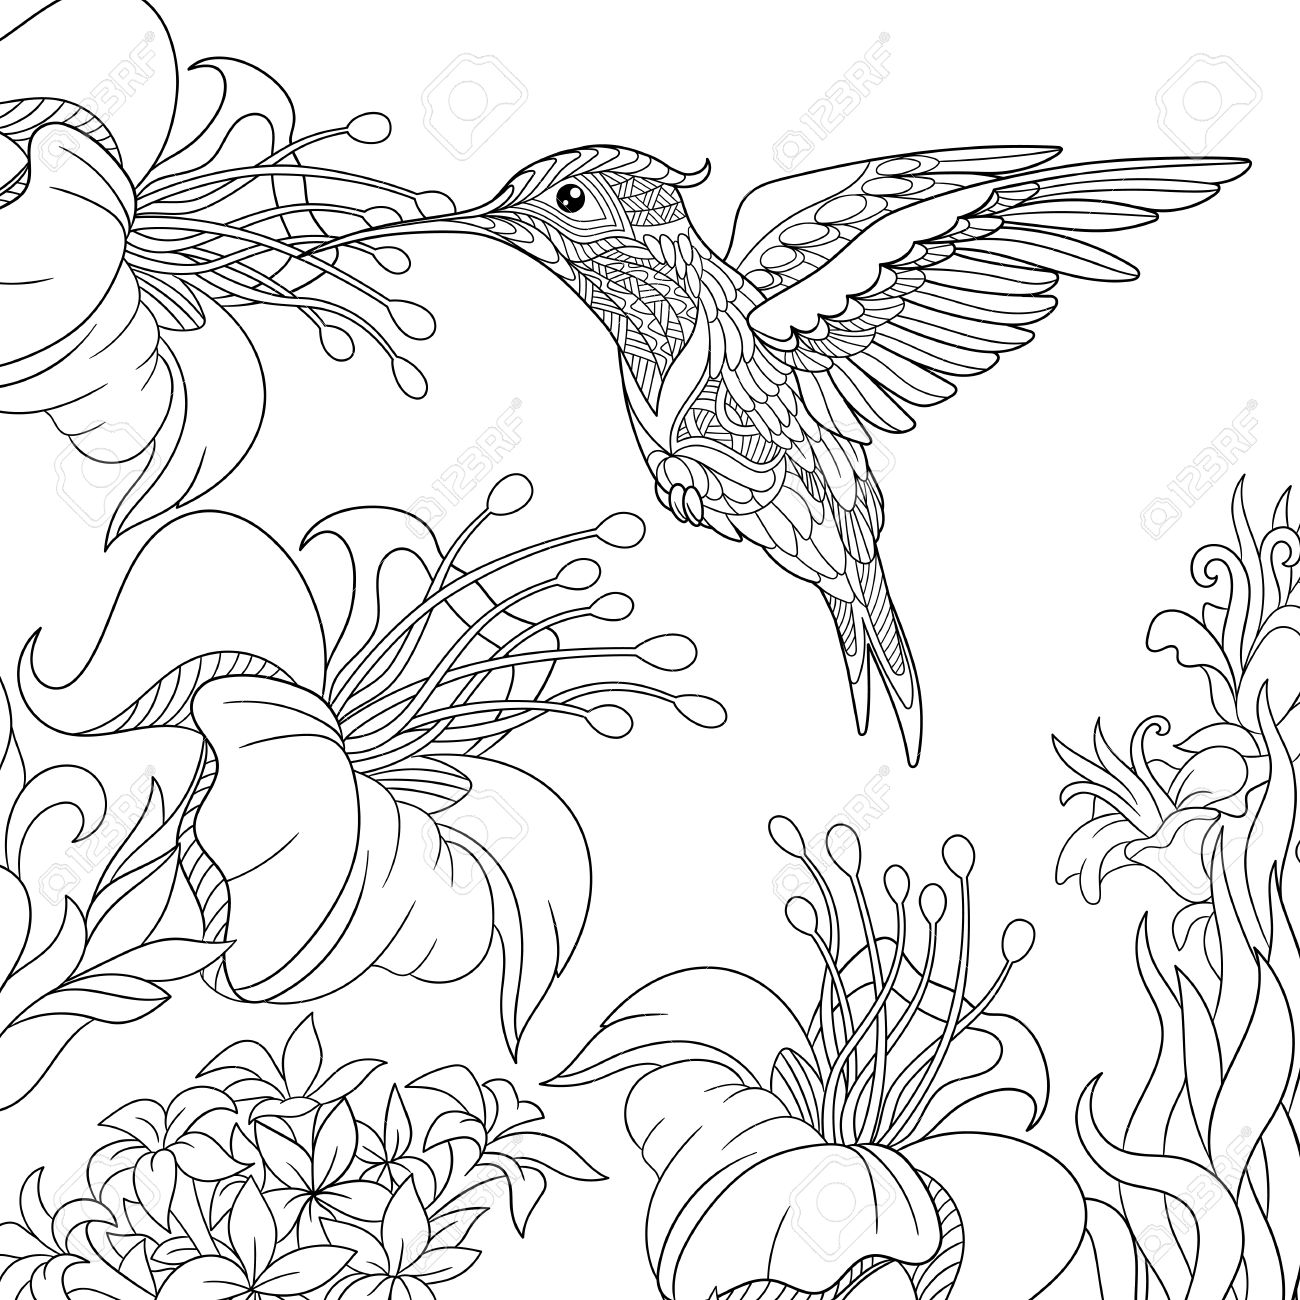 Coloring Page Of Hummingbird And Hibiscus Flowers. Freehand Sketch ...